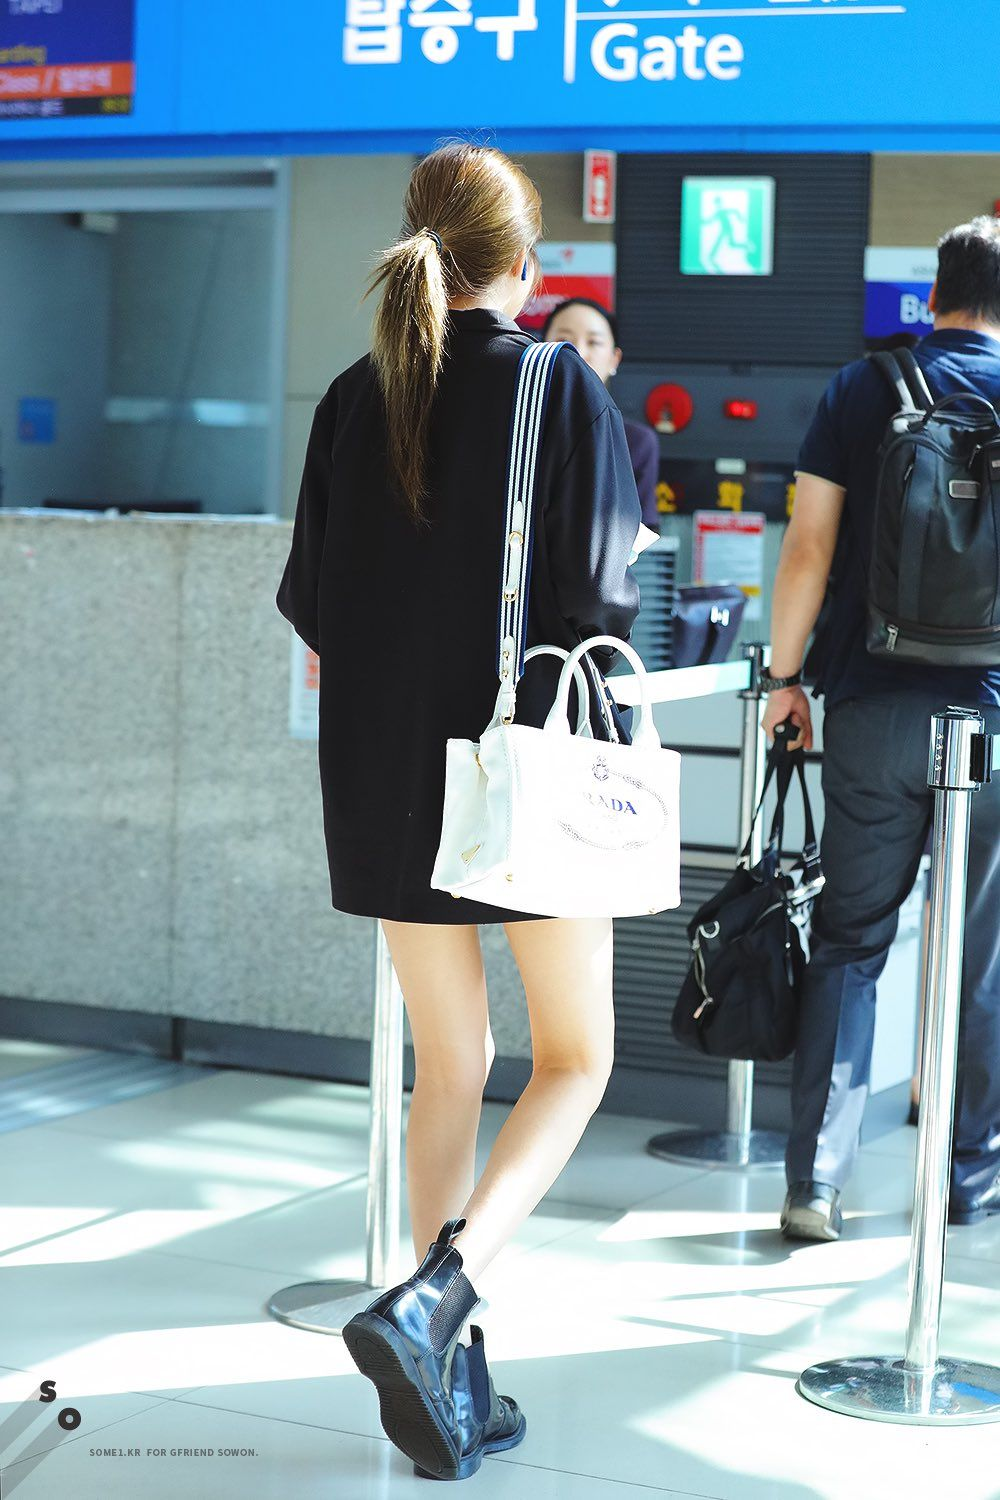 Pin By Drkruegerlover On Black Kpop Outfits Blackpink Fashion Kpop Fashion Kpop Outfits